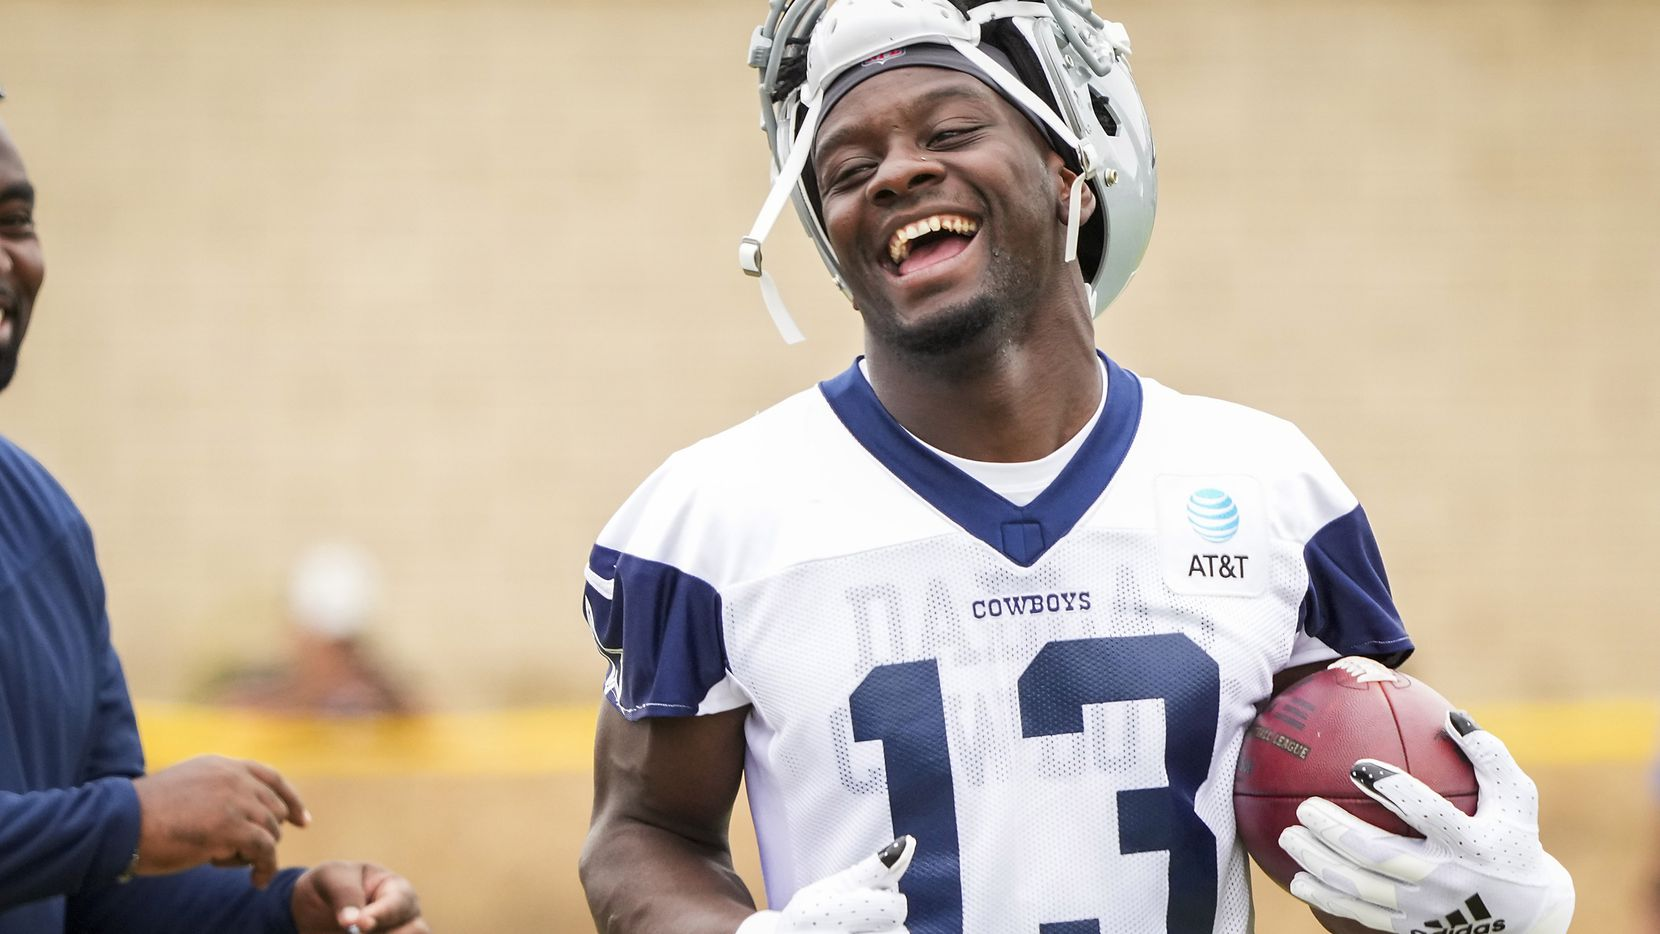 Dallas Cowboys wide receiver Michael Gallup smiles on the sidelines during a practice at training camp on Sunday, July 25, 2021, in Oxnard, Calif.